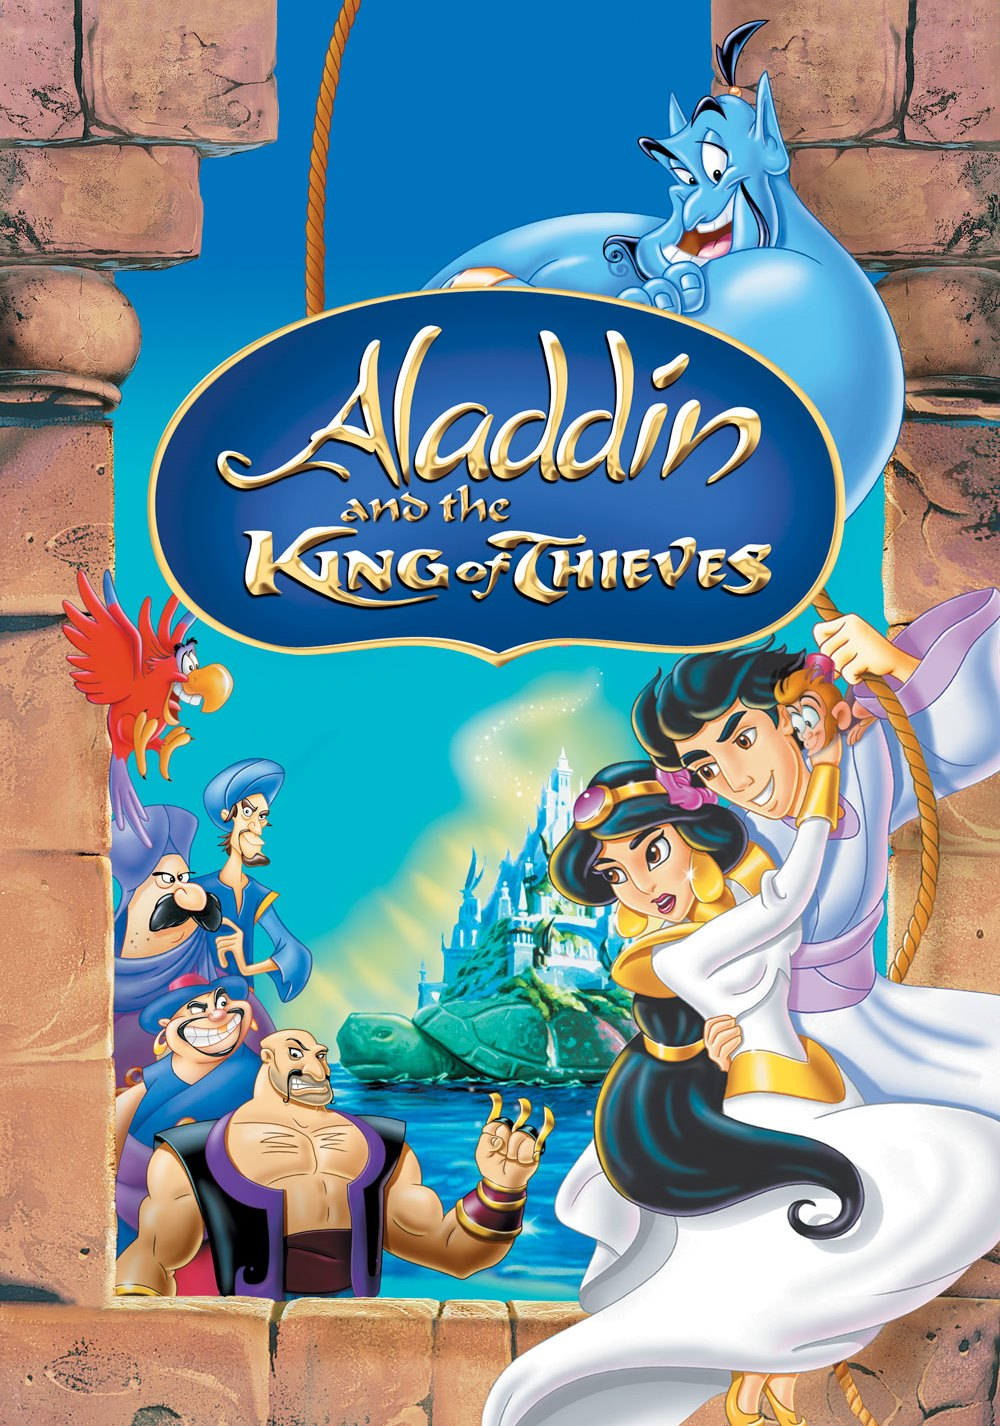 Aladdin and the King of Thieves (1996; animated)